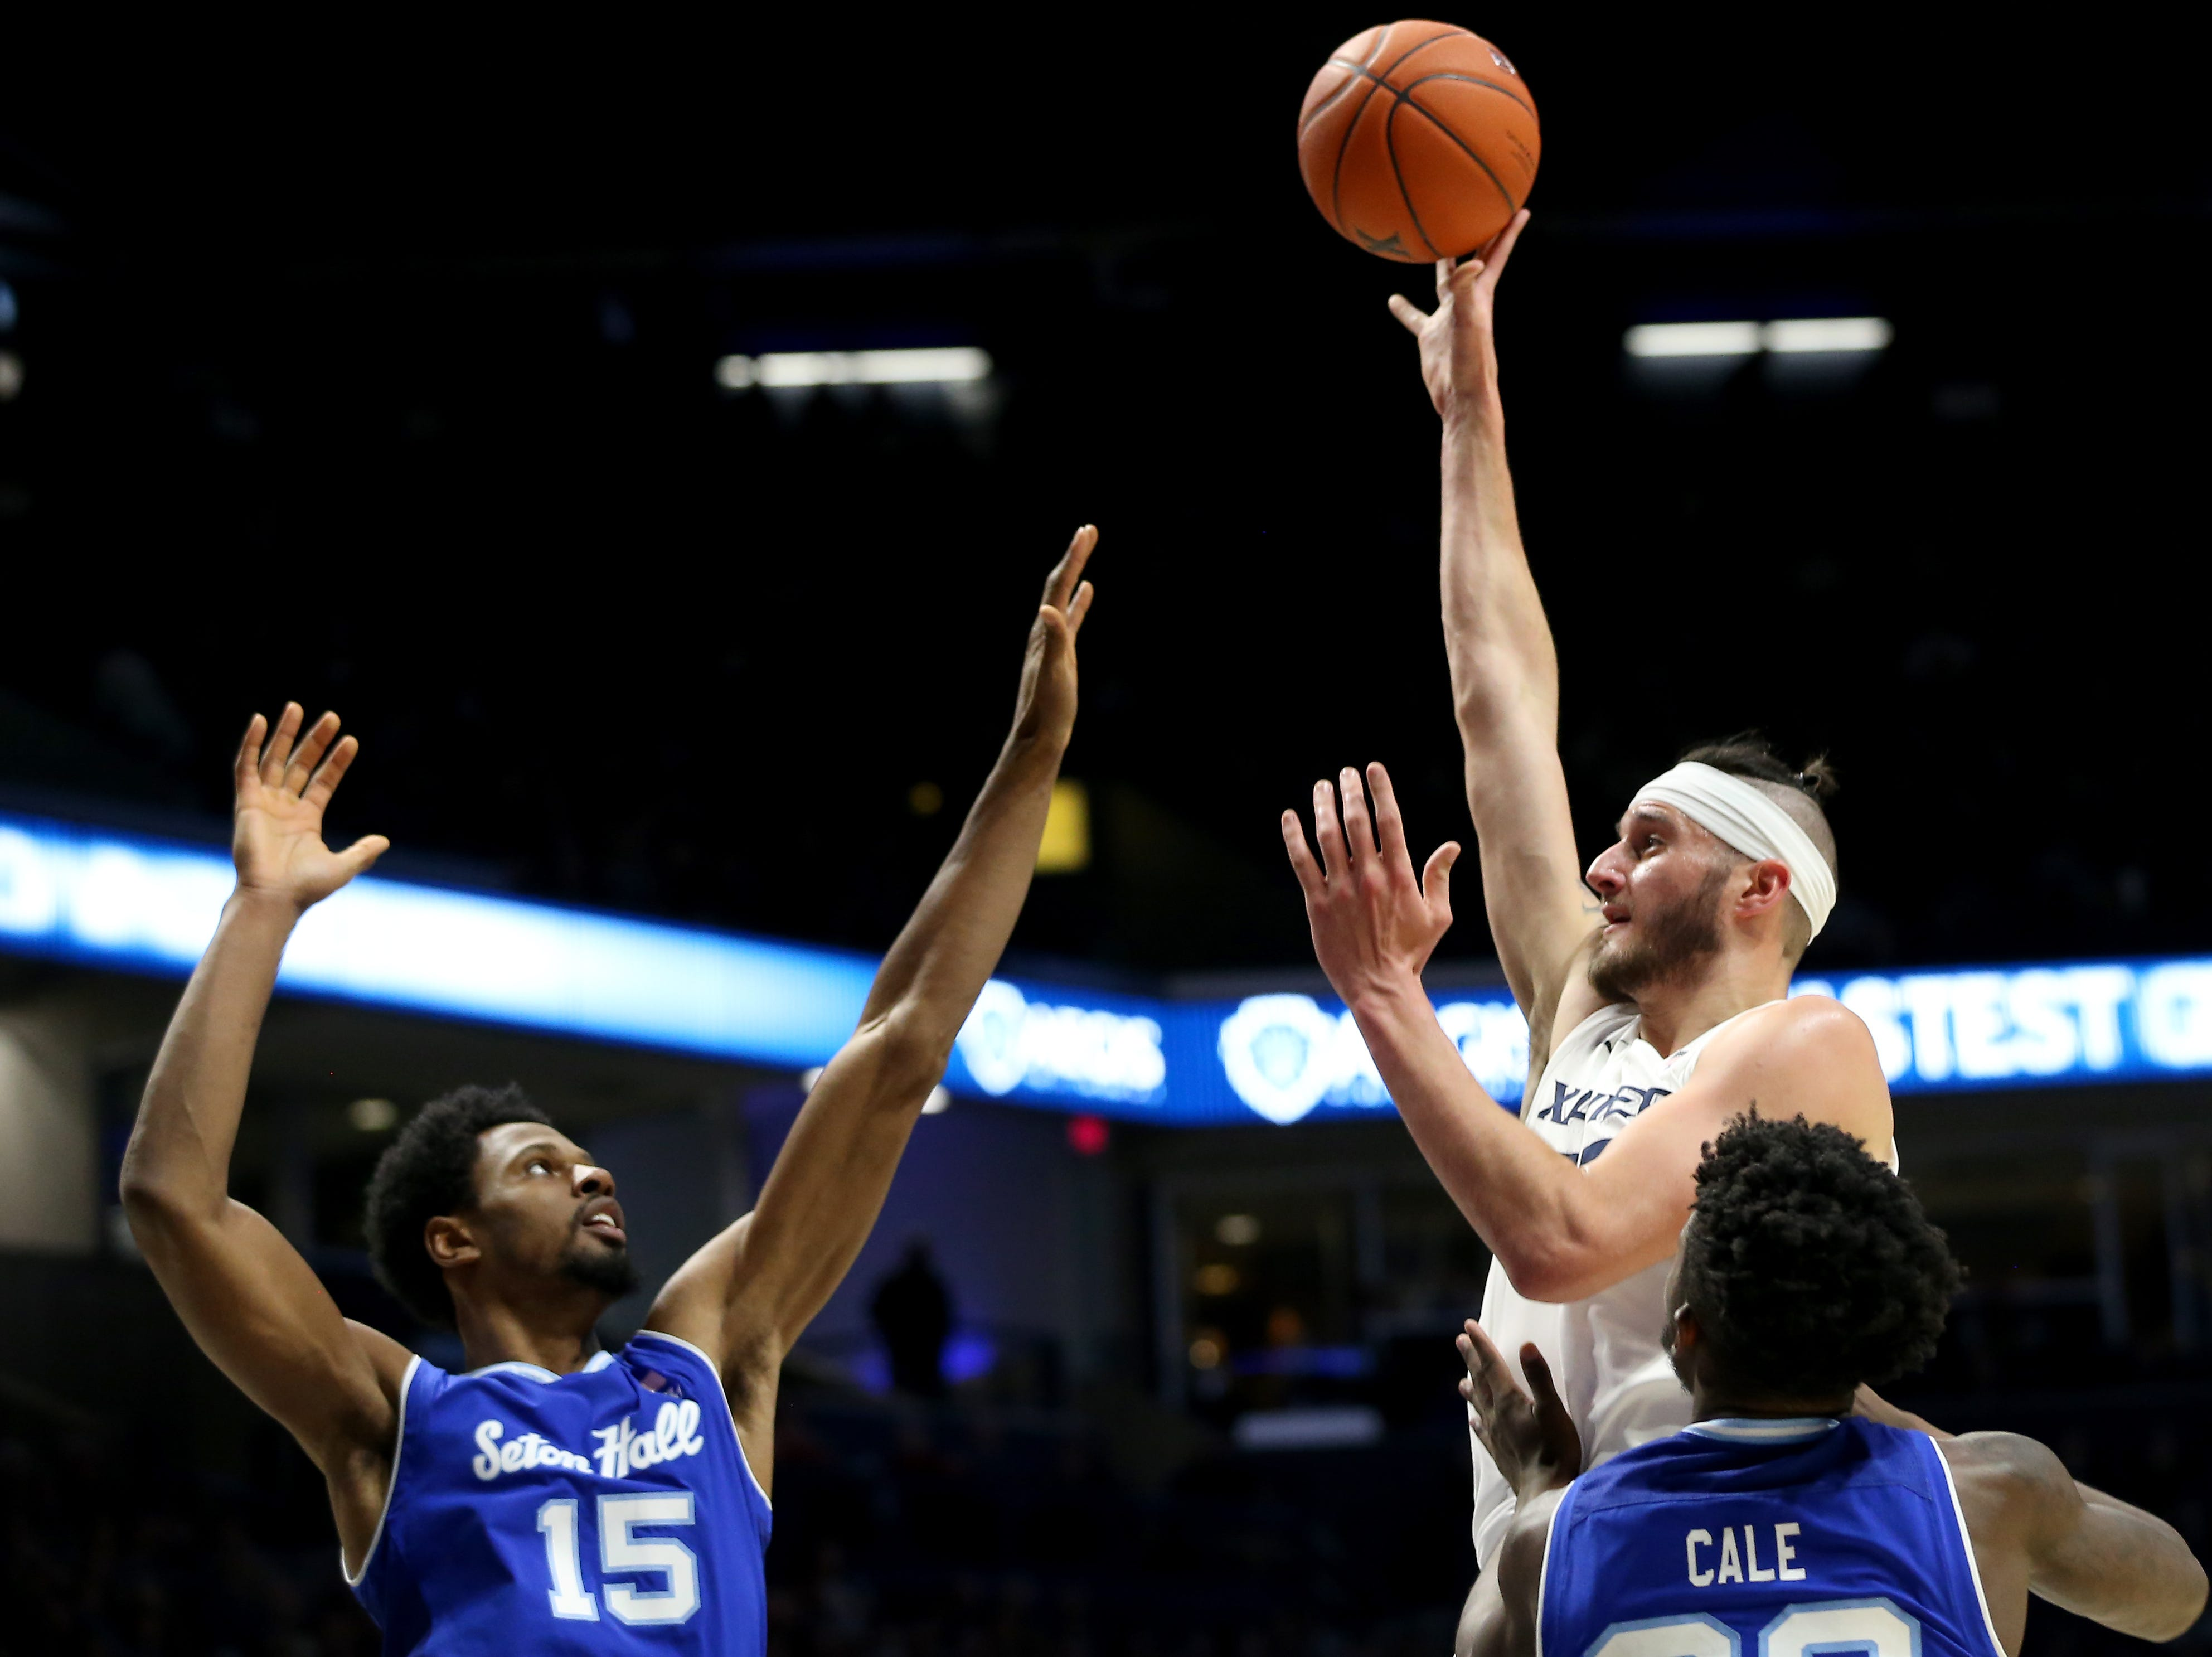 Xavier Musketeers forward Zach Hankins (35) goes up for a shot as Seton Hall Pirates forward Taurean Thompson (15) defends in the first half of an NCAA college basketball game, Wednesday, Jan. 2, 2019, at the Cintas Center in Cincinnati.